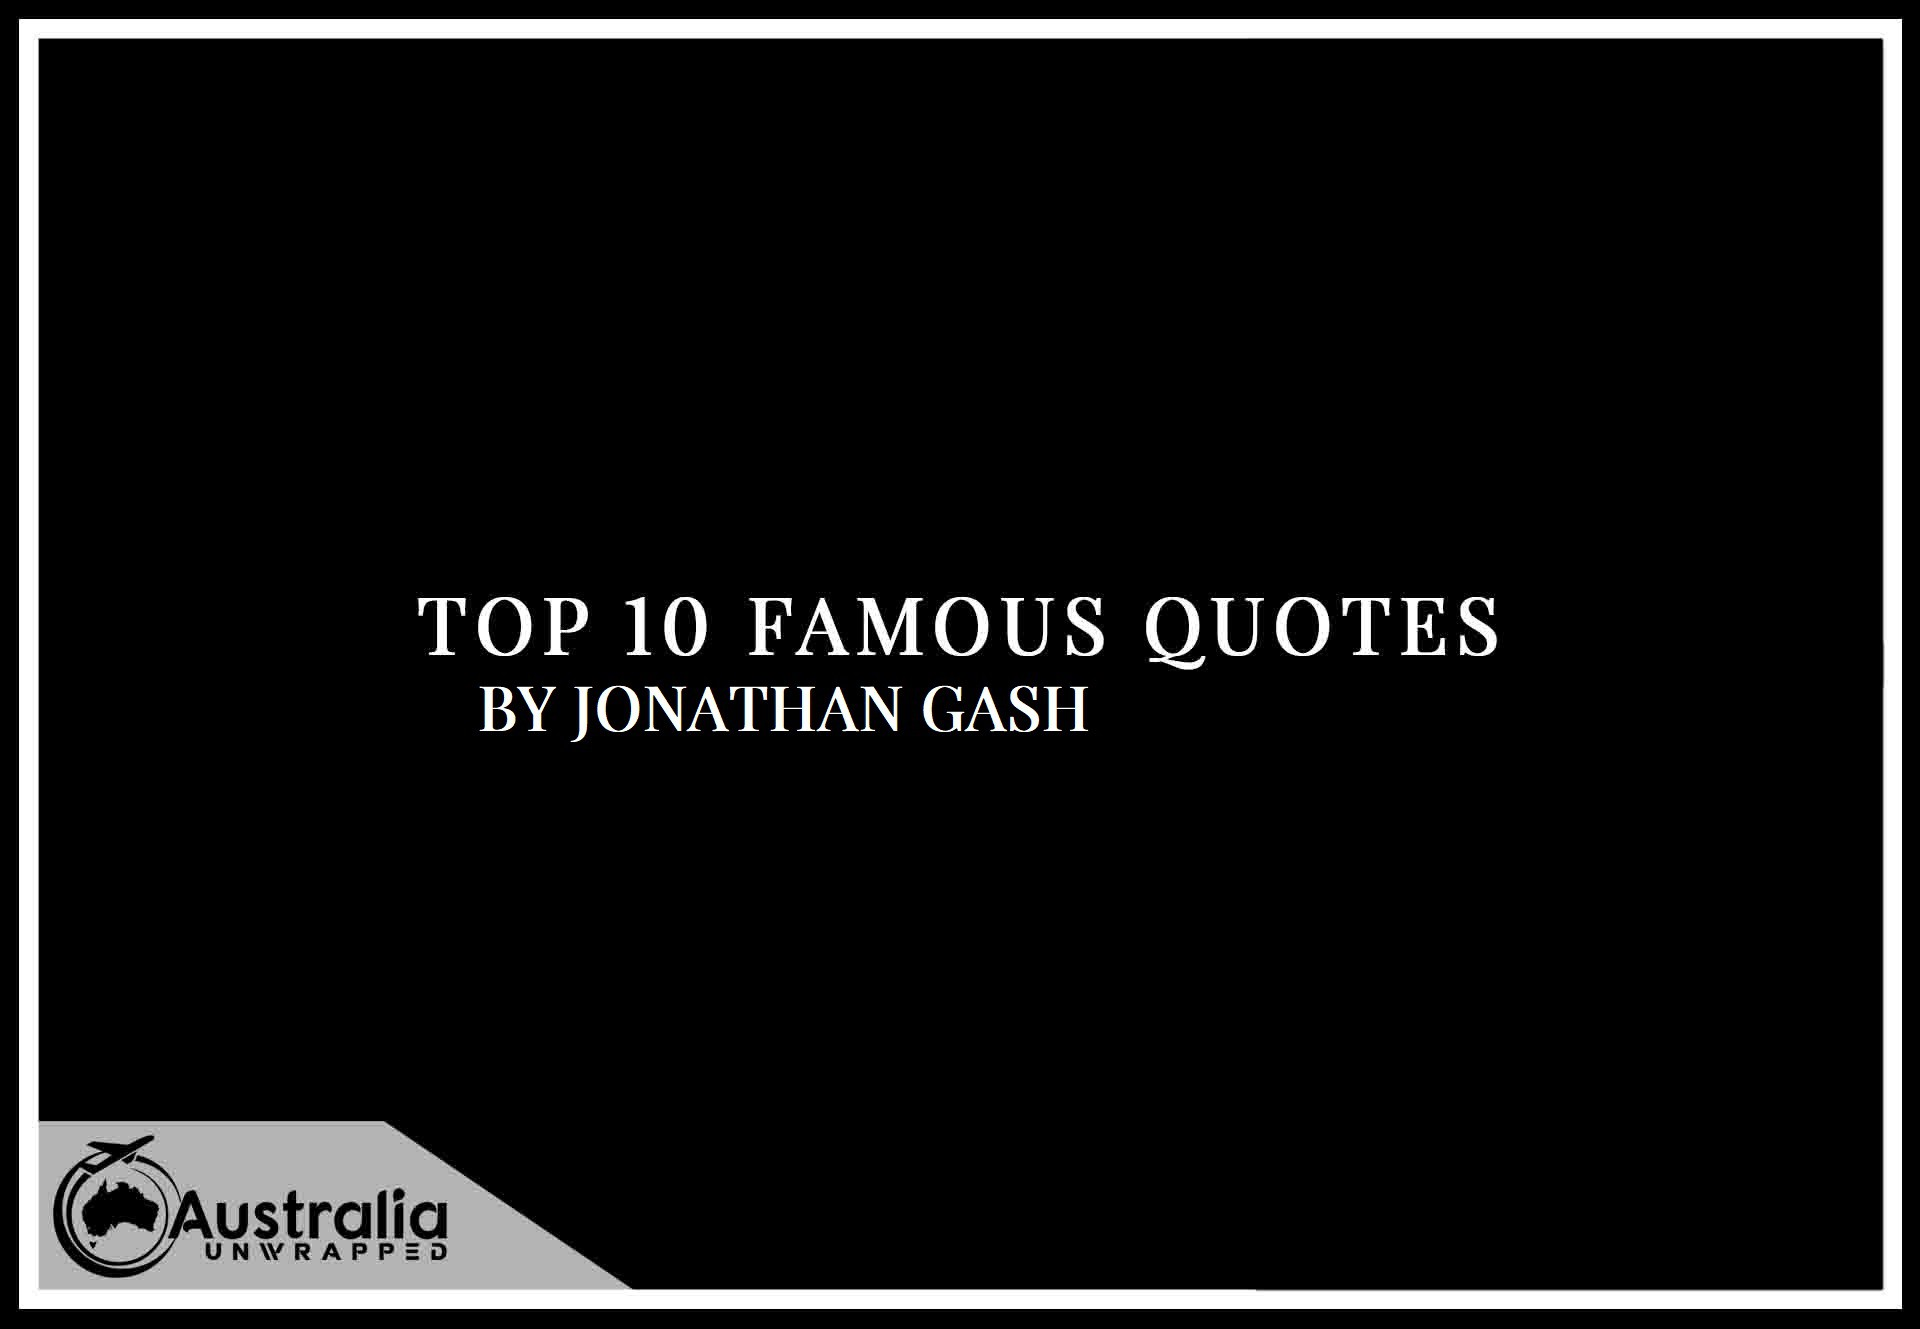 Top 10 Famous Quotes by Author Jonathan Gash